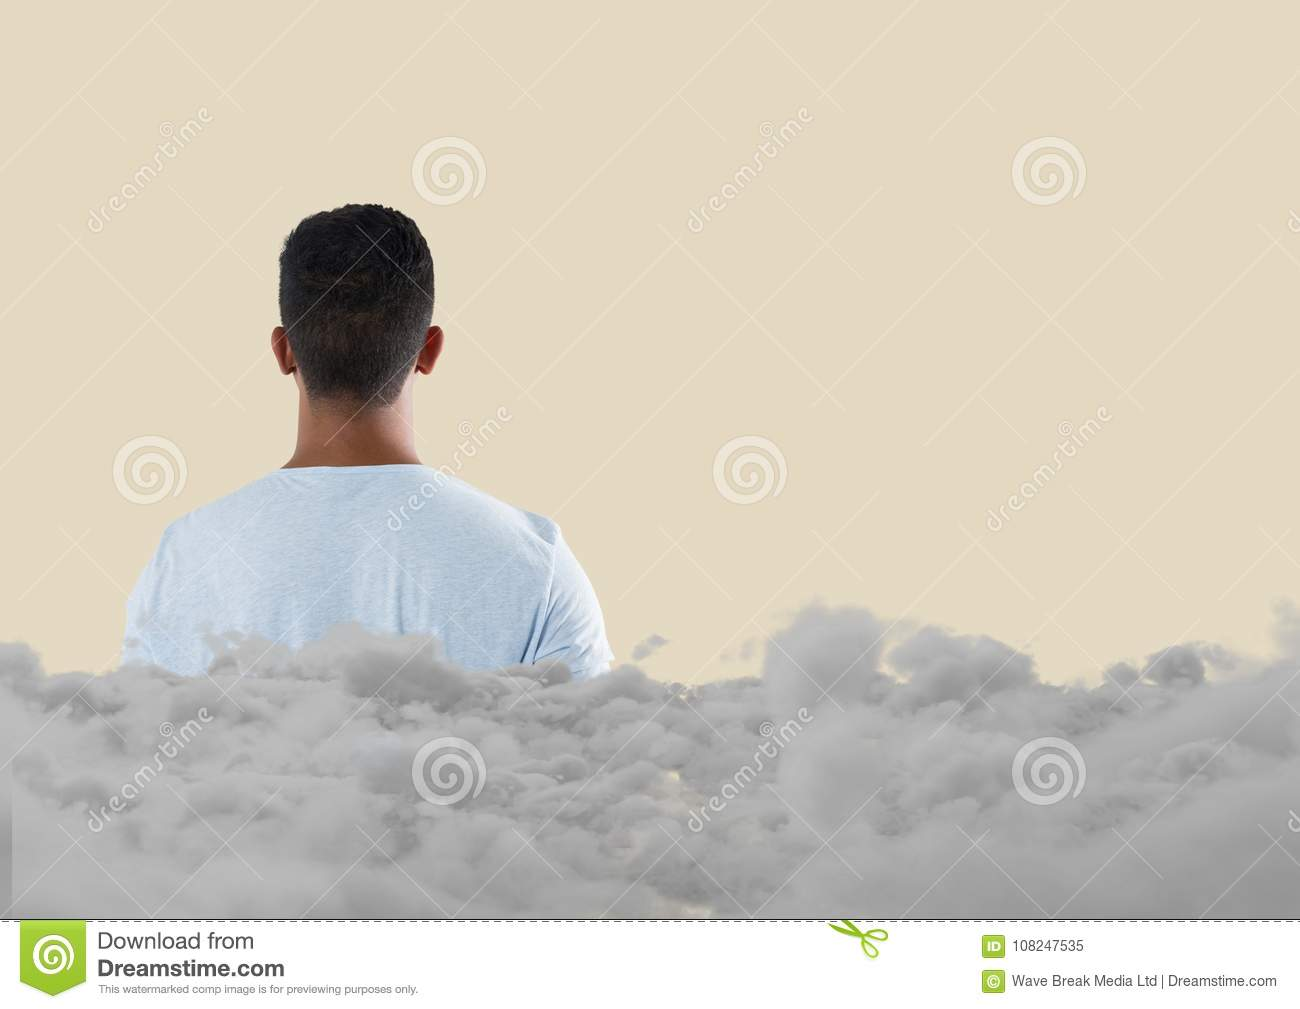 Teenager looking forward with clouds behind him